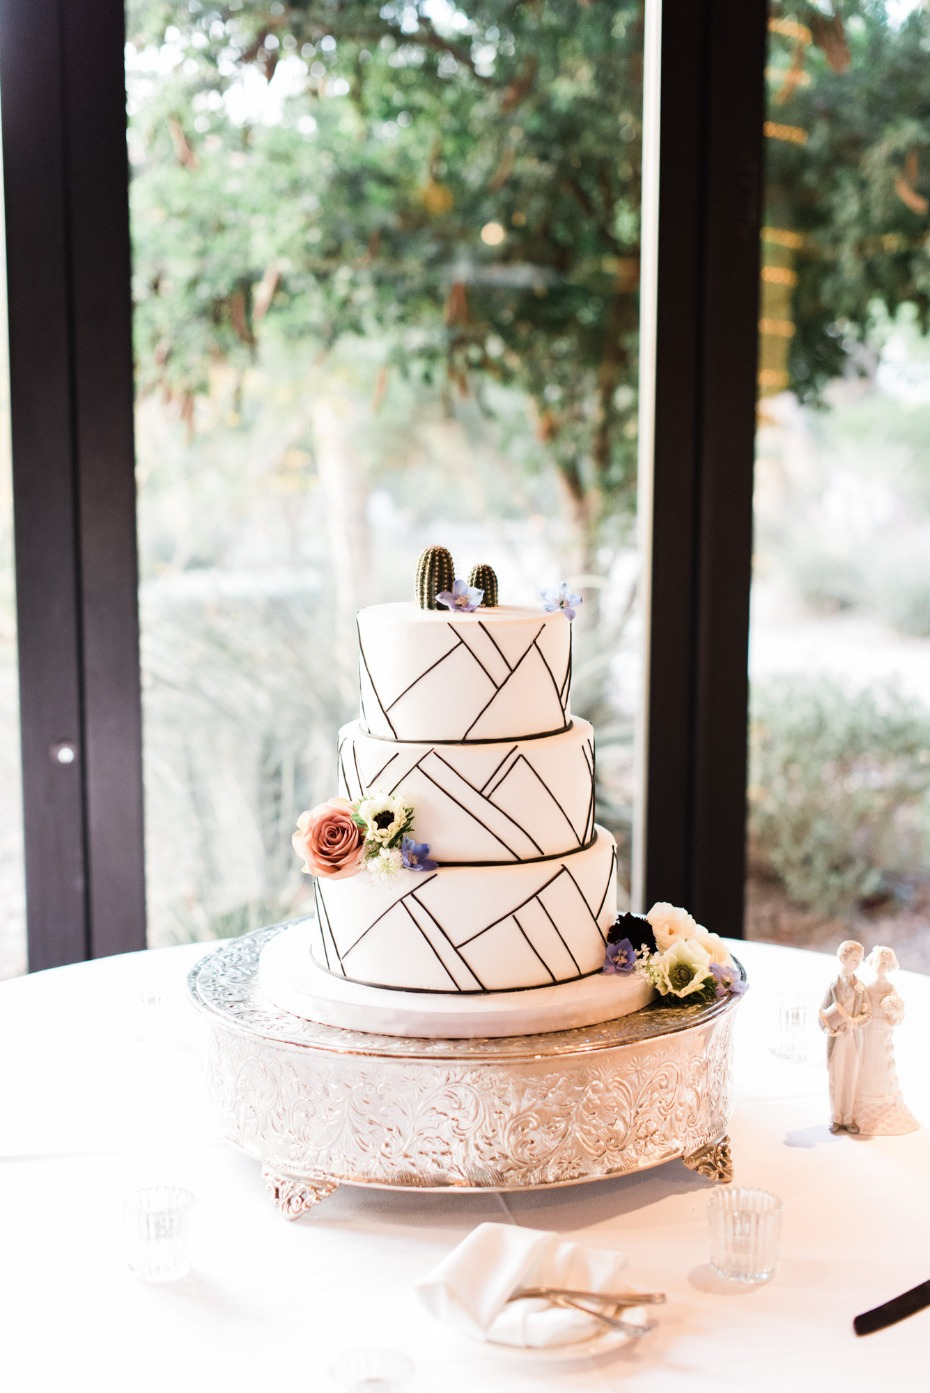 Modern wedding cake with cactus toppers